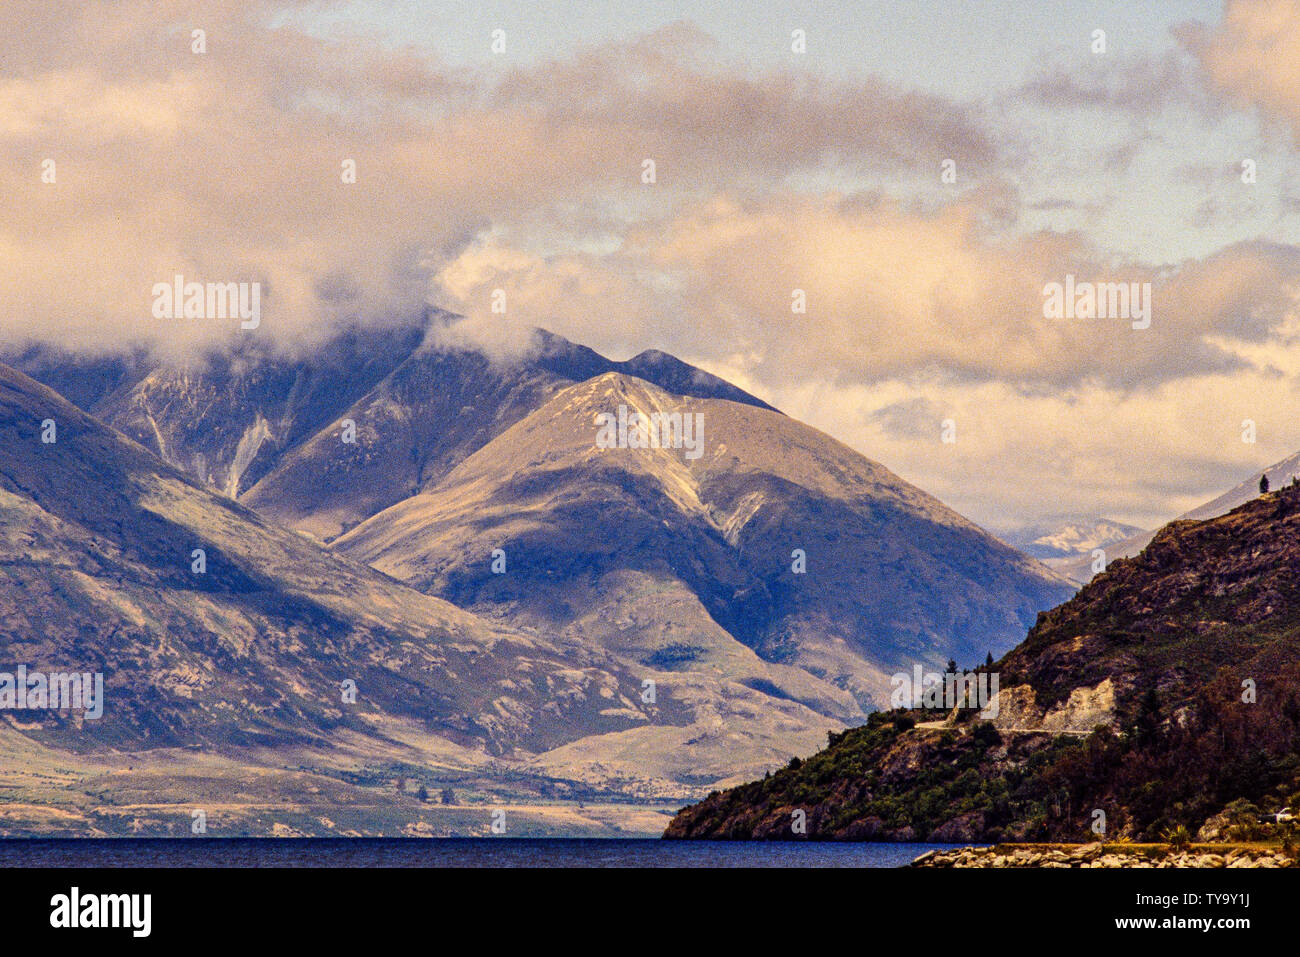 New Zealand, South Island. landscape with Lake Wakatipu and mountains, near Queenstown. Photo: © Simon Grosset. Archive: Image digitised from an origi Stock Photo